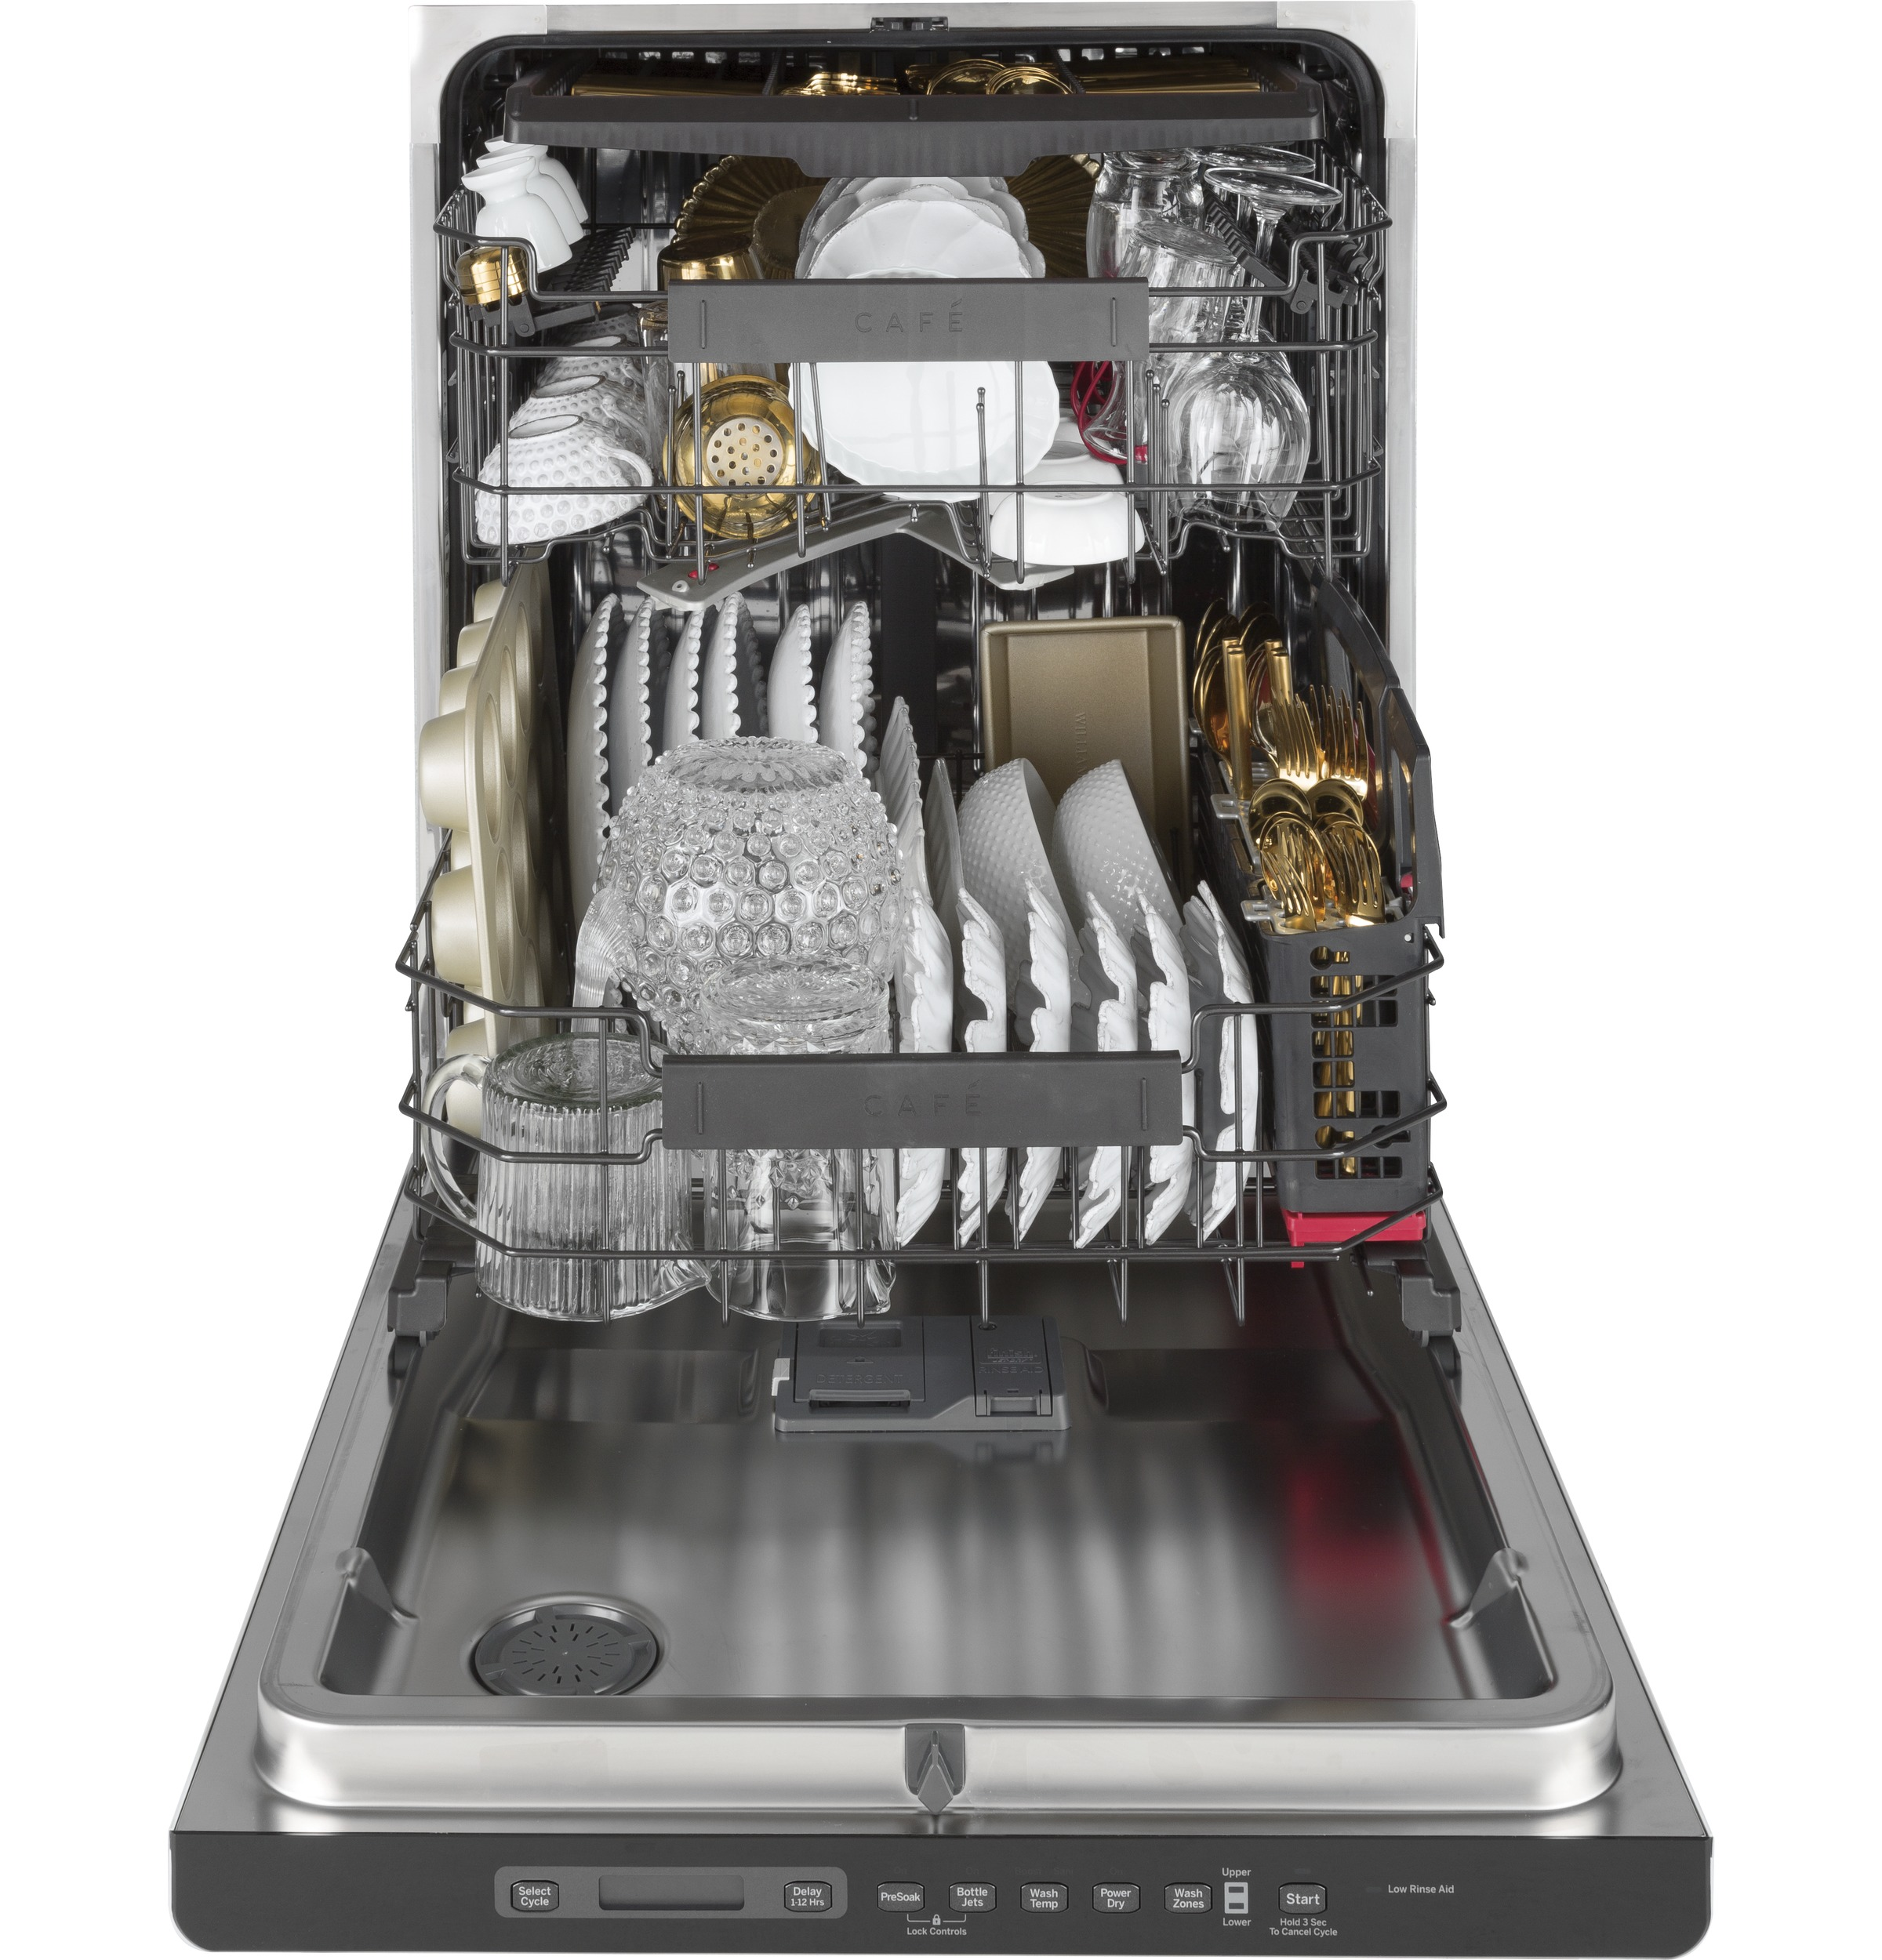 Model: CDT866P4MW2 | Café™ Stainless Interior Built-In Dishwasher with Hidden Controls